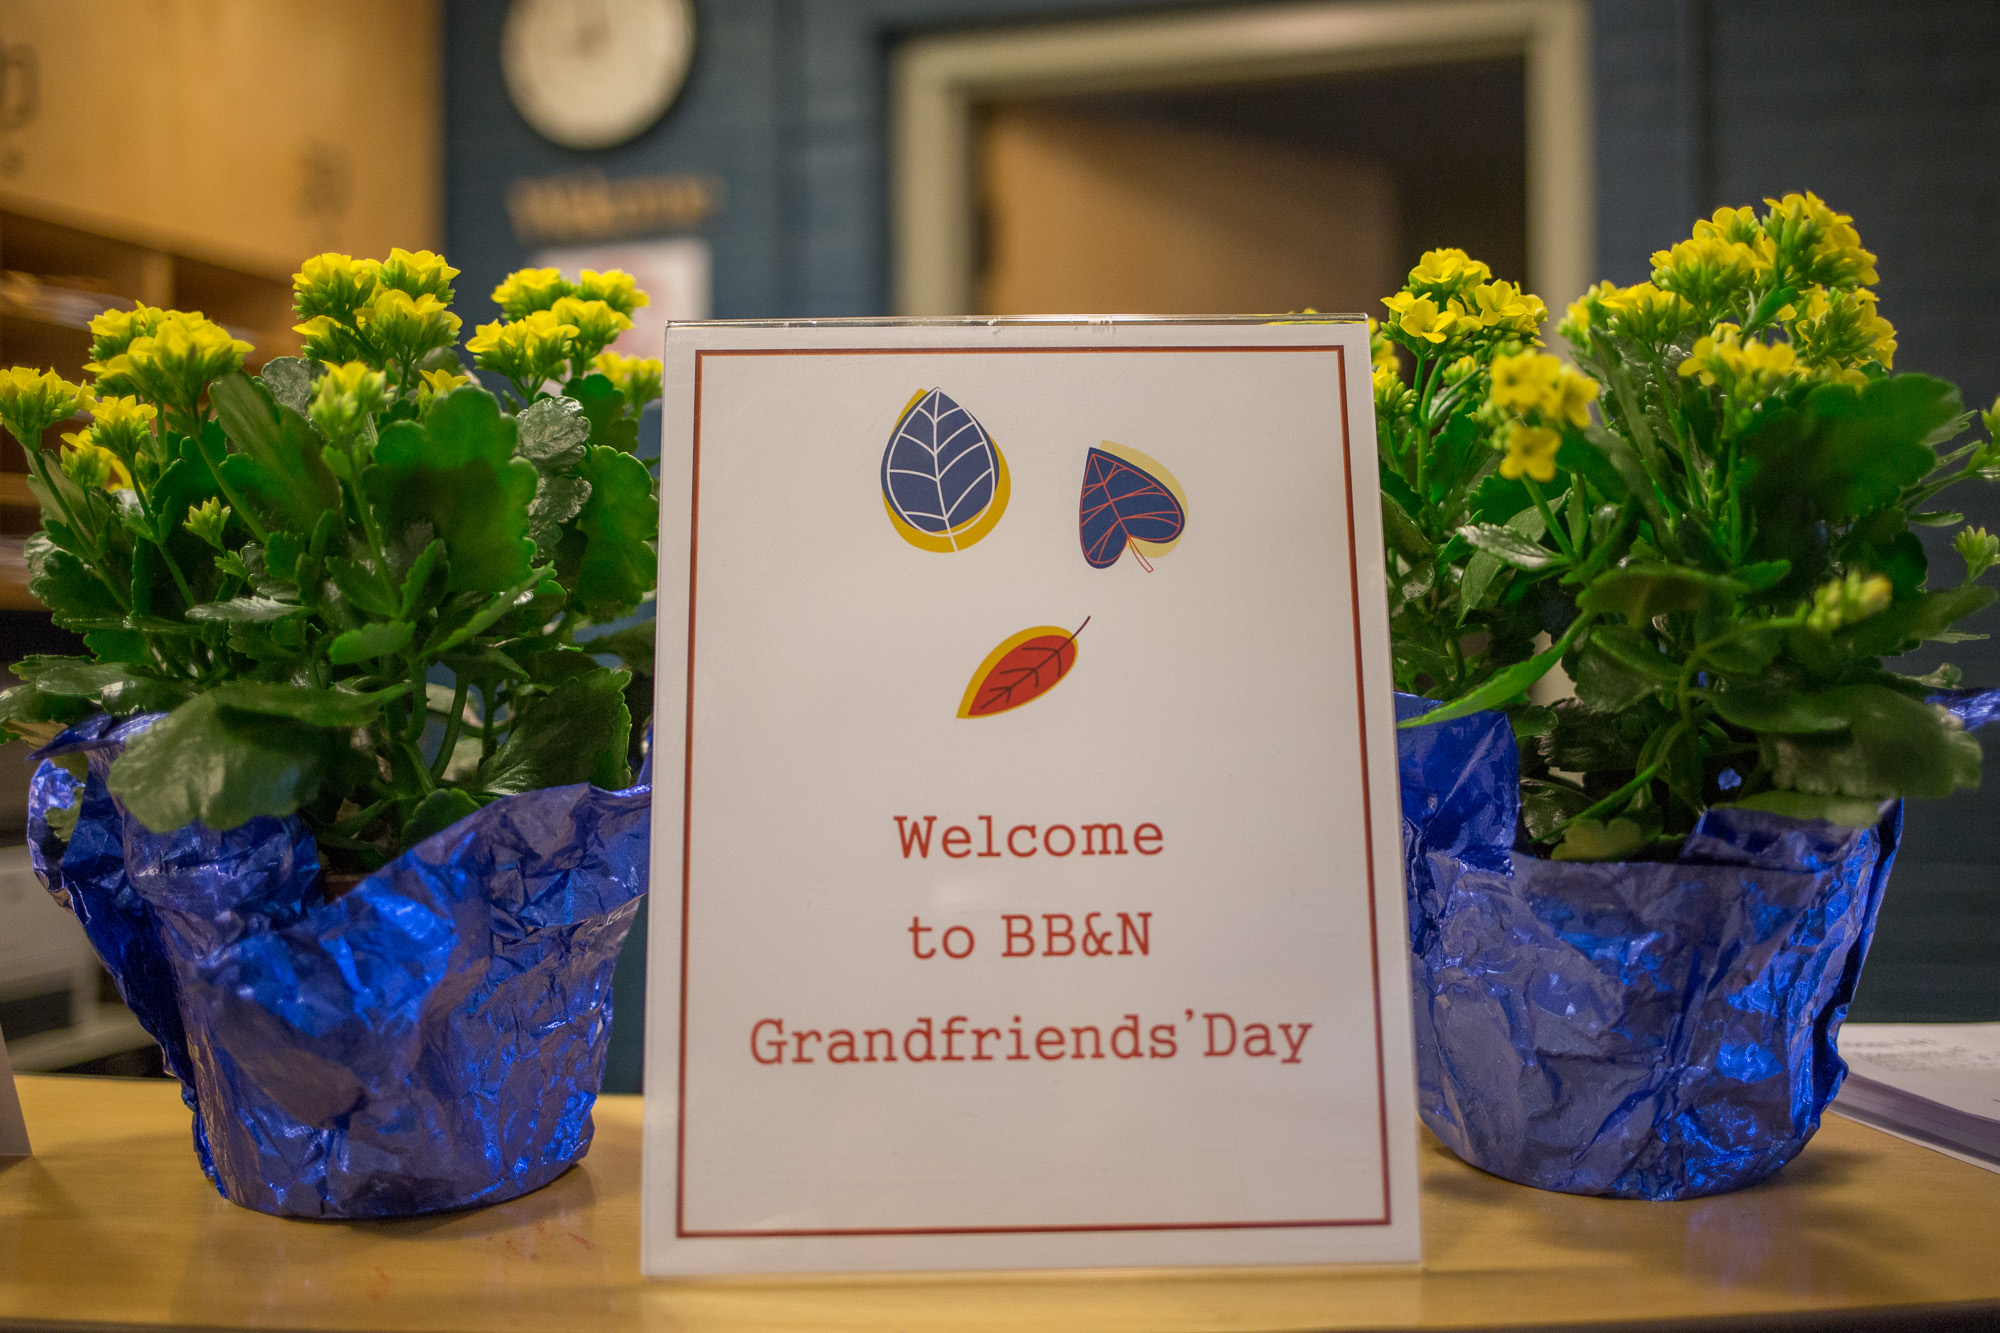 BB&N Grandfriends Day